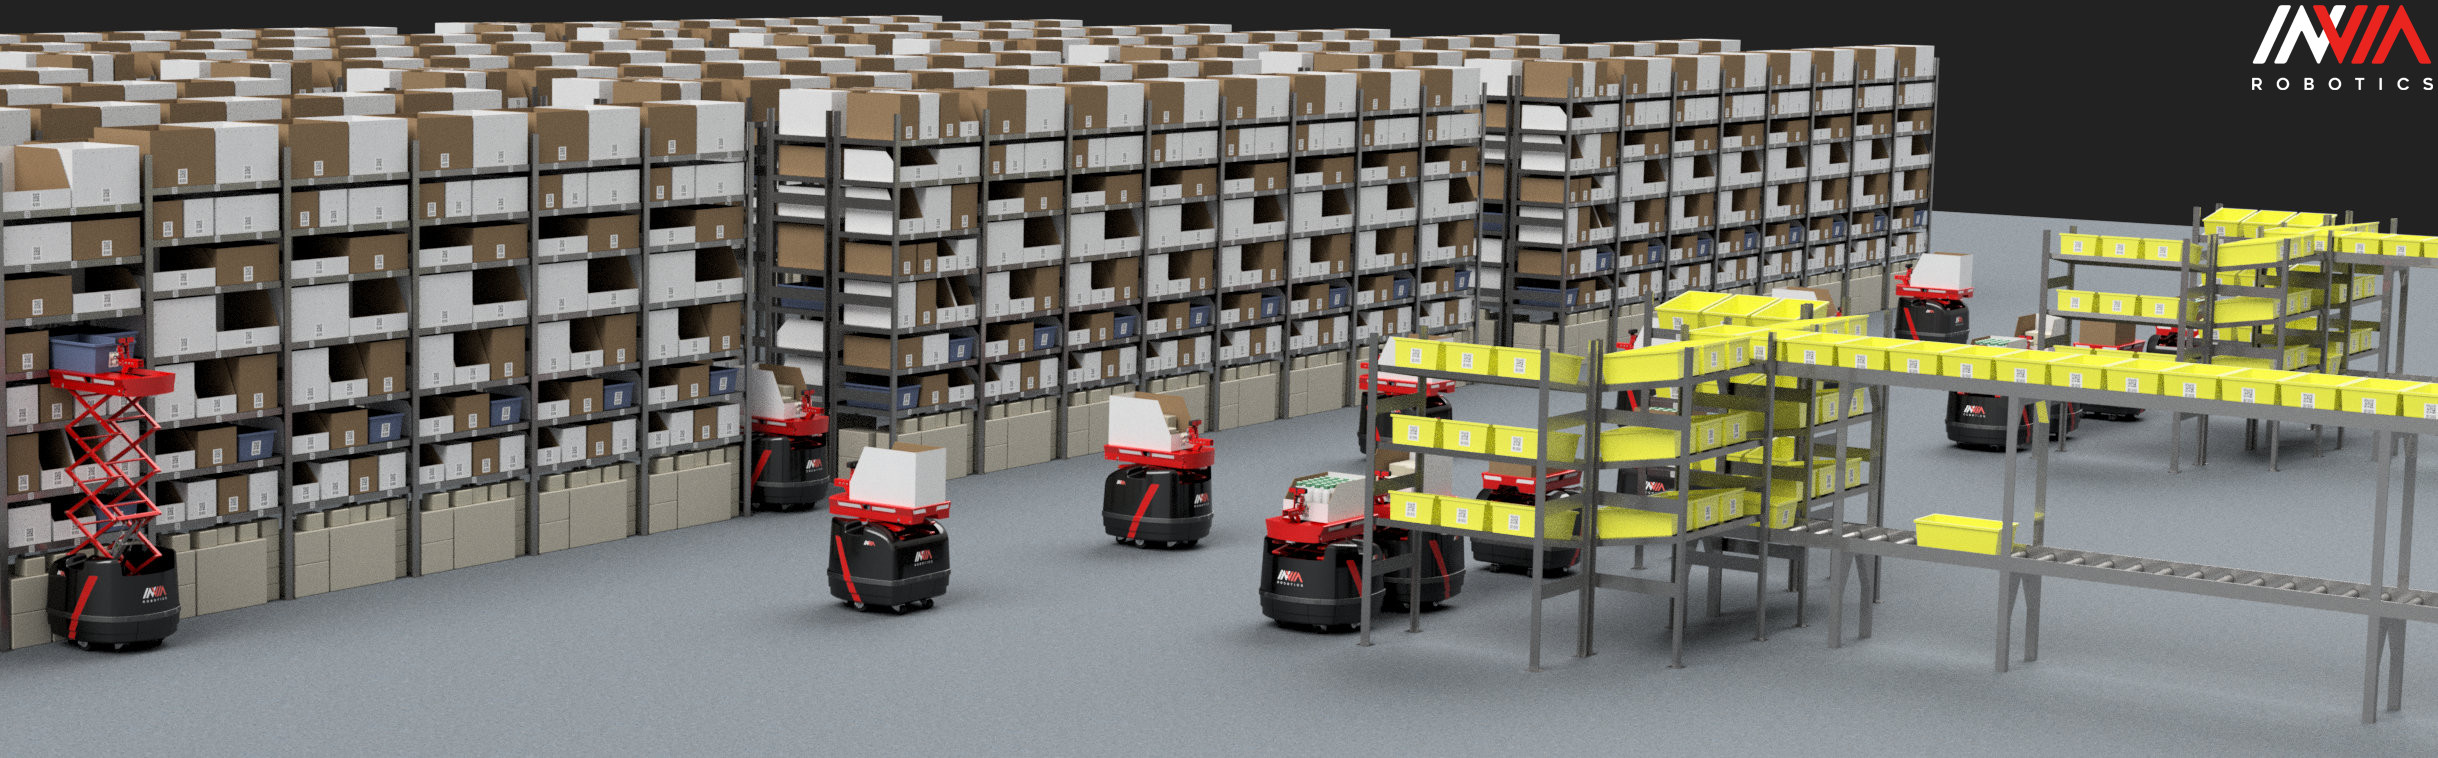 InVia Robotics Releases Goods-to-Person System for Warehouse Automation